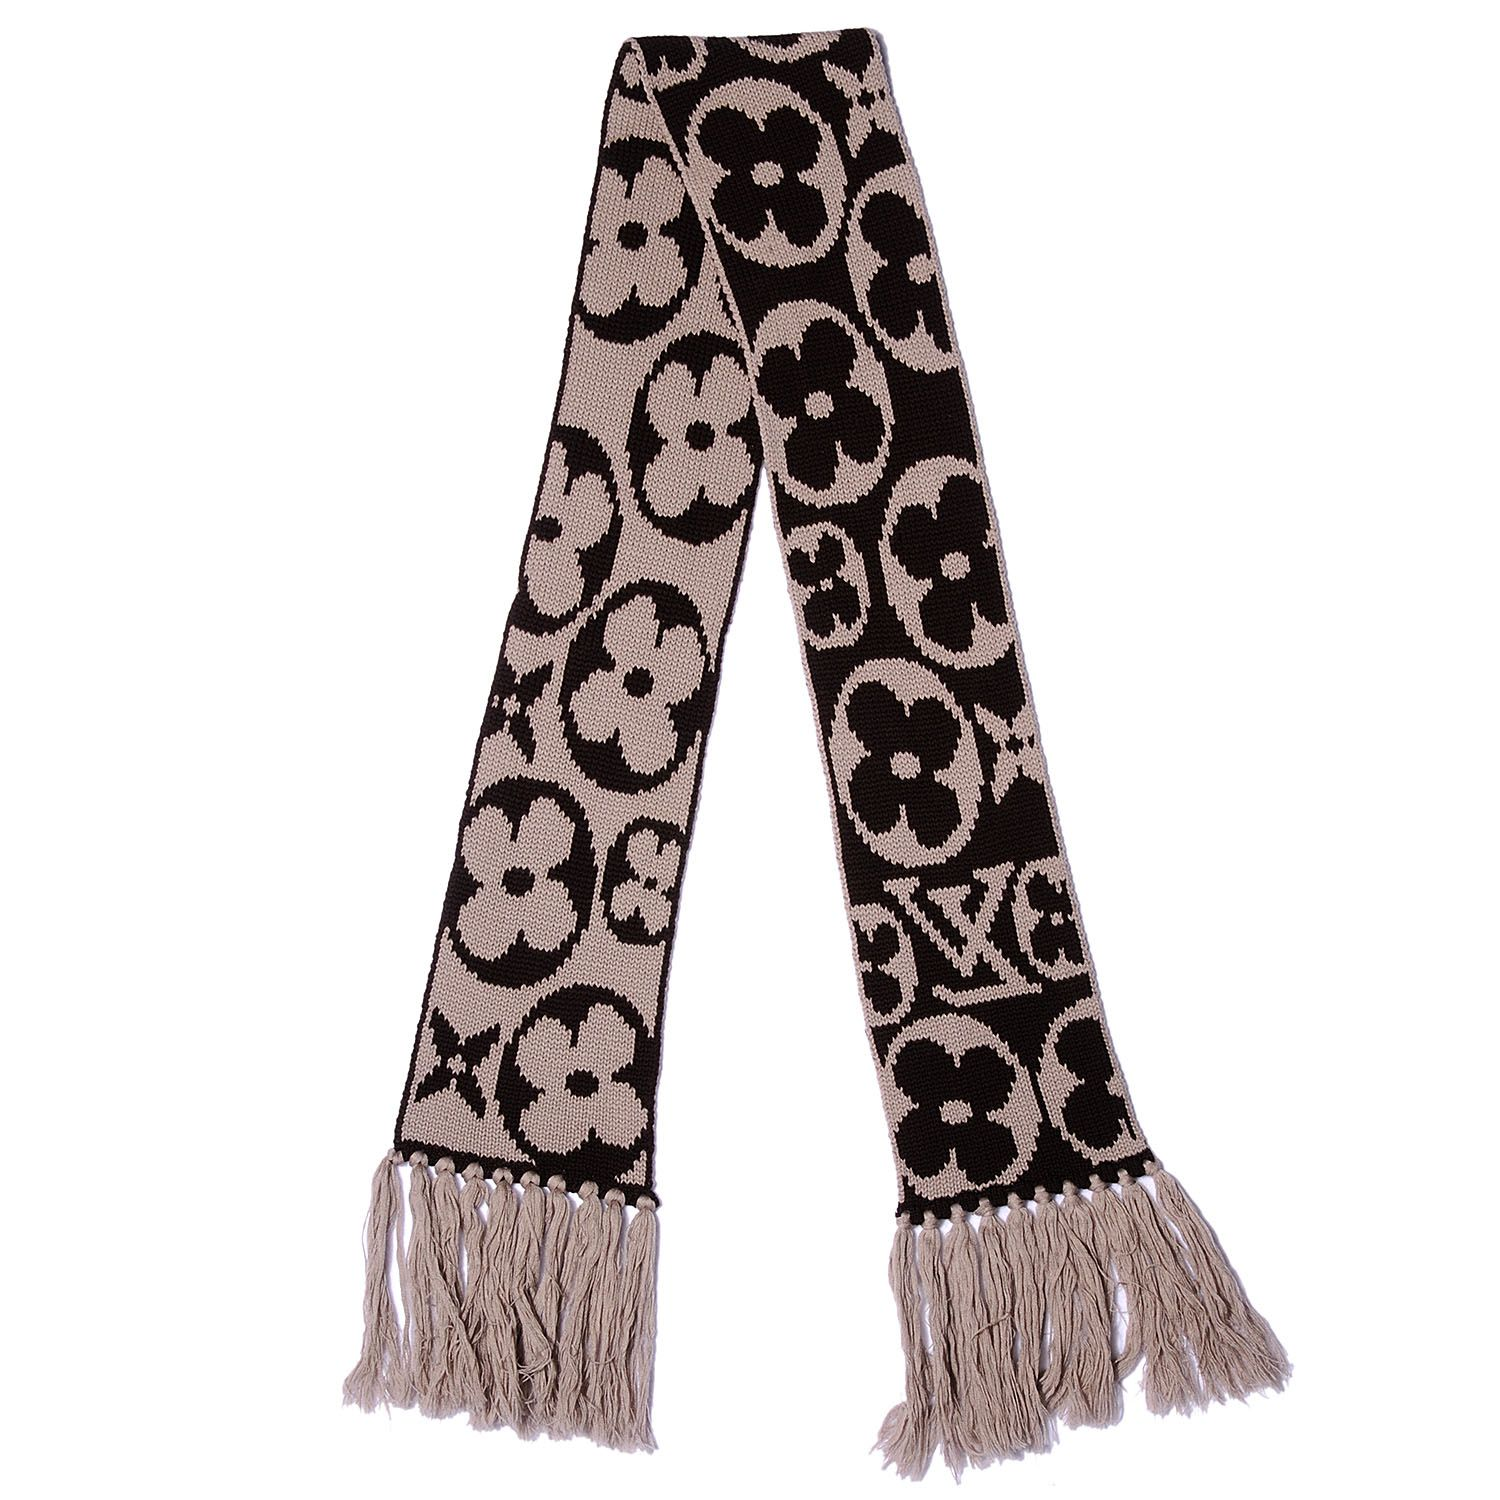 Fashionphile louis vuitton monogram knit wool fringe scarf ebene this stylish scarf is made of soft and warm 100 wool knit and feature traditional symbols from the louis vuitton biocorpaavc Images